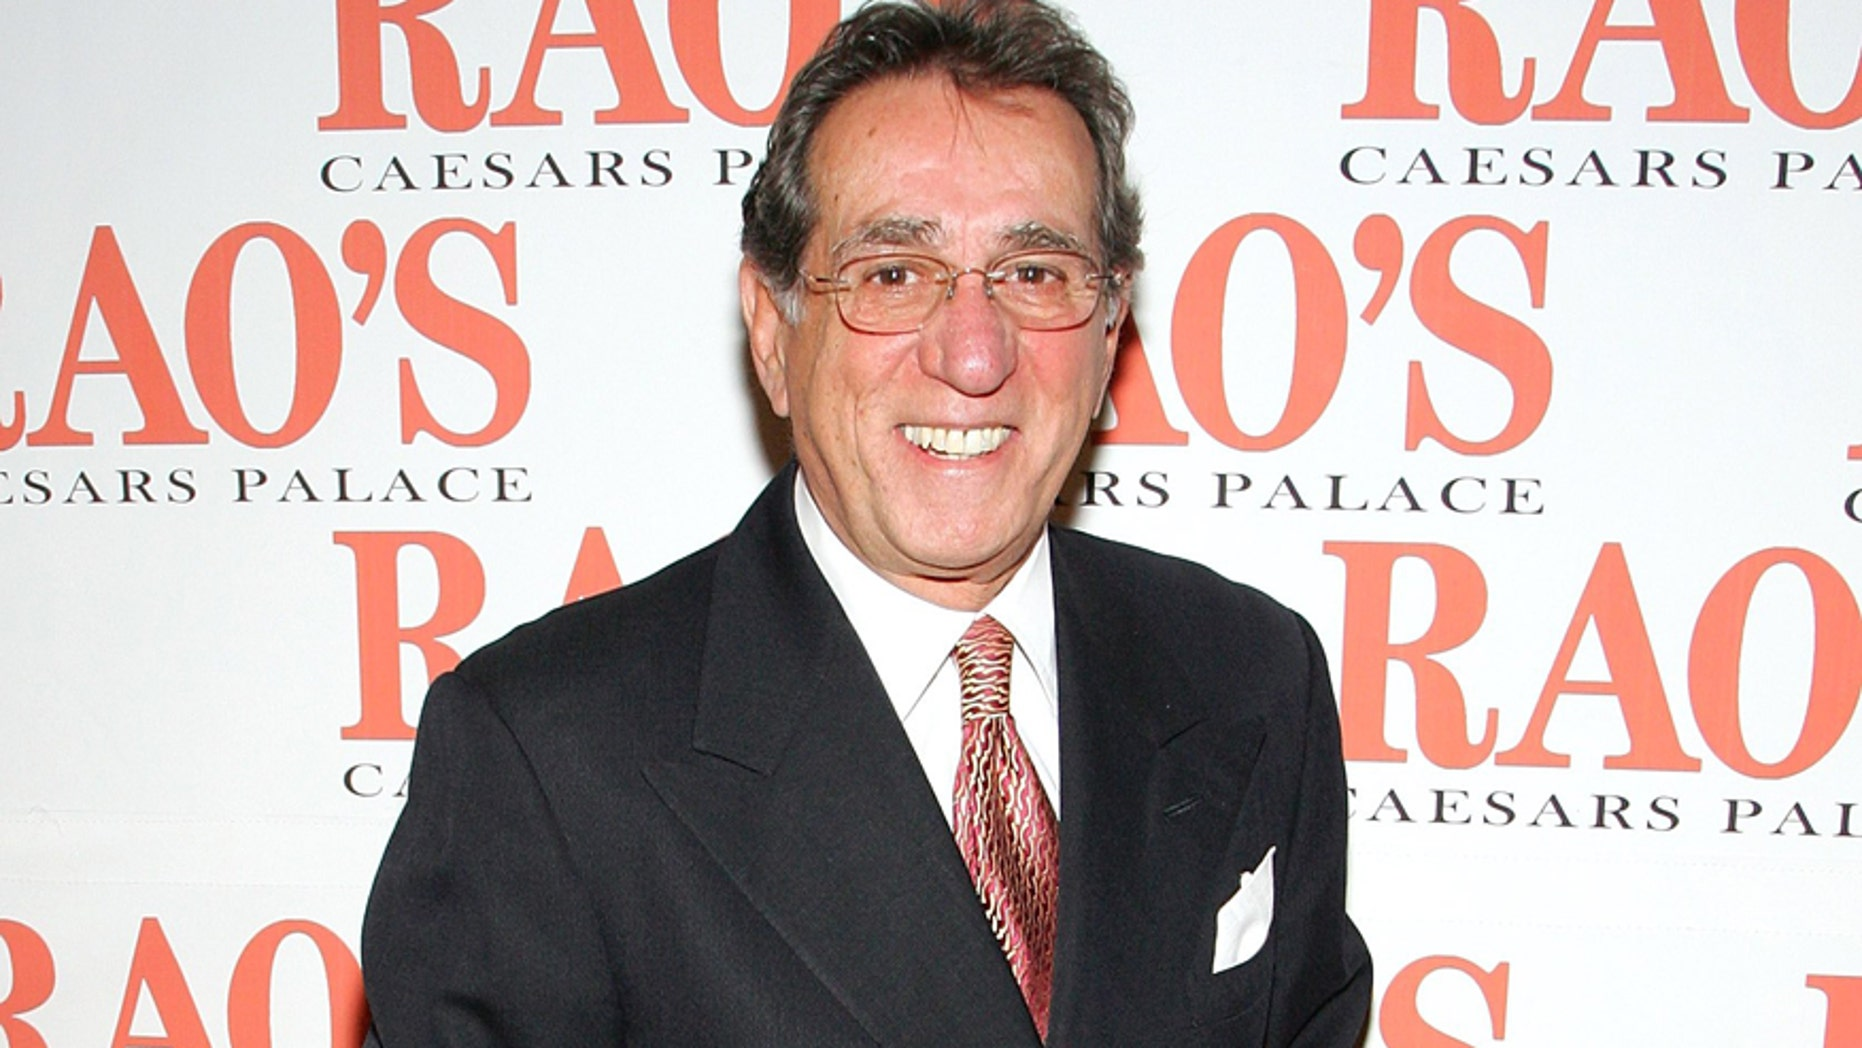 LAS VEGAS - JANUARY 11:  Rao's co-owner Frank Pellegrino Sr. arrives at the grand opening party for Rao's at Caesars Palace January 11, 2007 in Las Vegas, Nevada.  (Photo by Ethan Miller/Getty Images for Caesars)